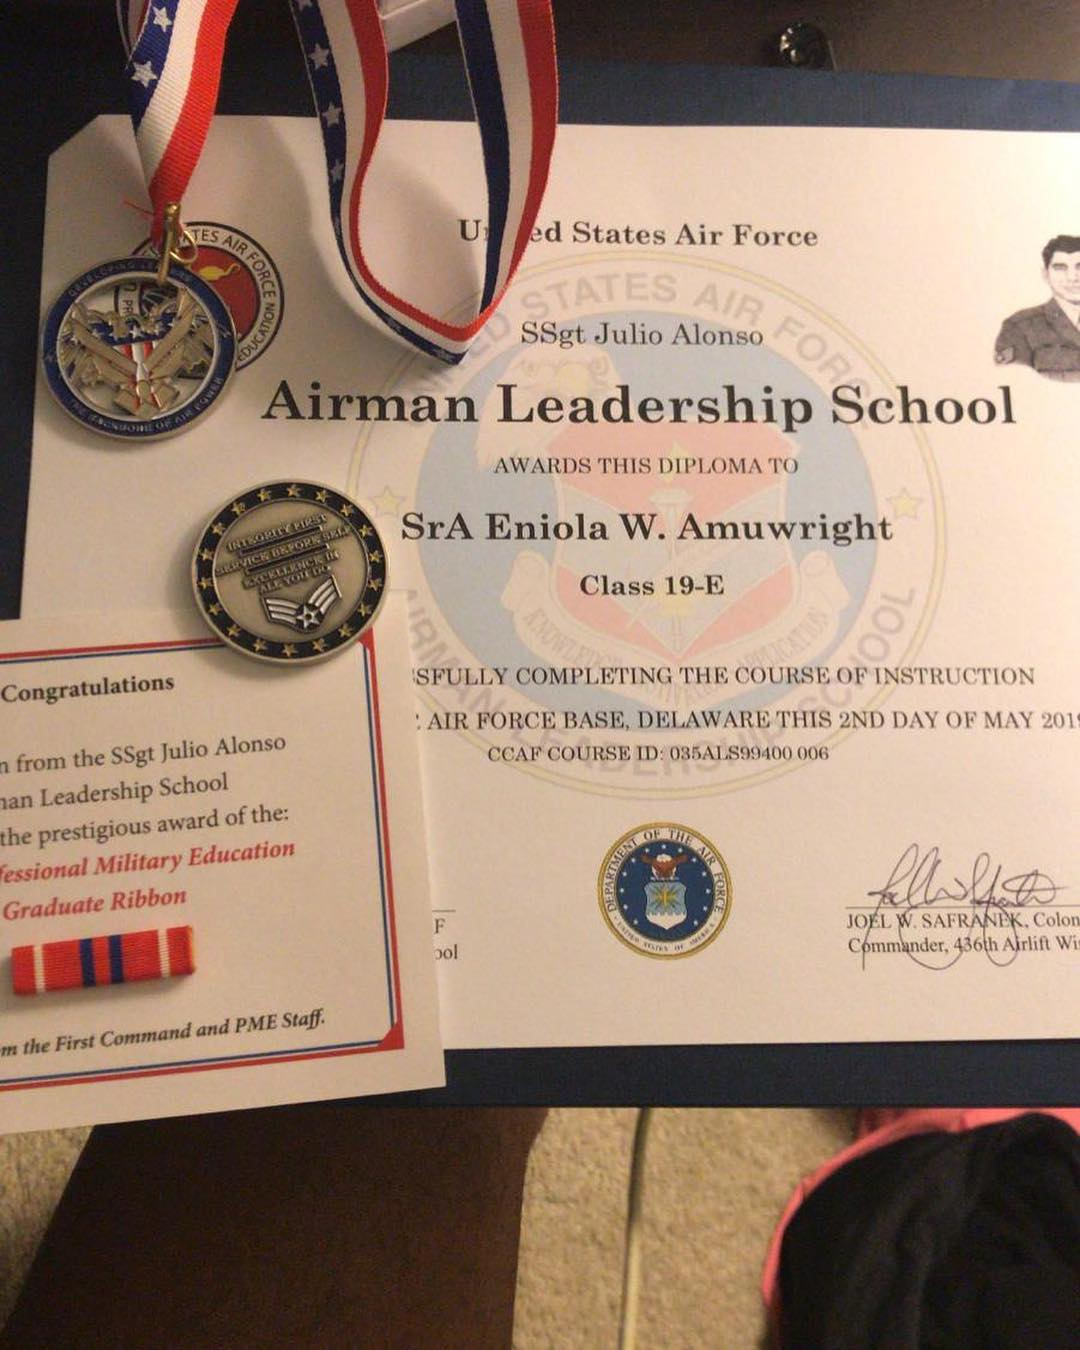 nollywood star bukky wright s son bags degree from united states air force photos 1 - Nollywood Actress Bukky Wright's Son Bags Degree From The United States Air Force